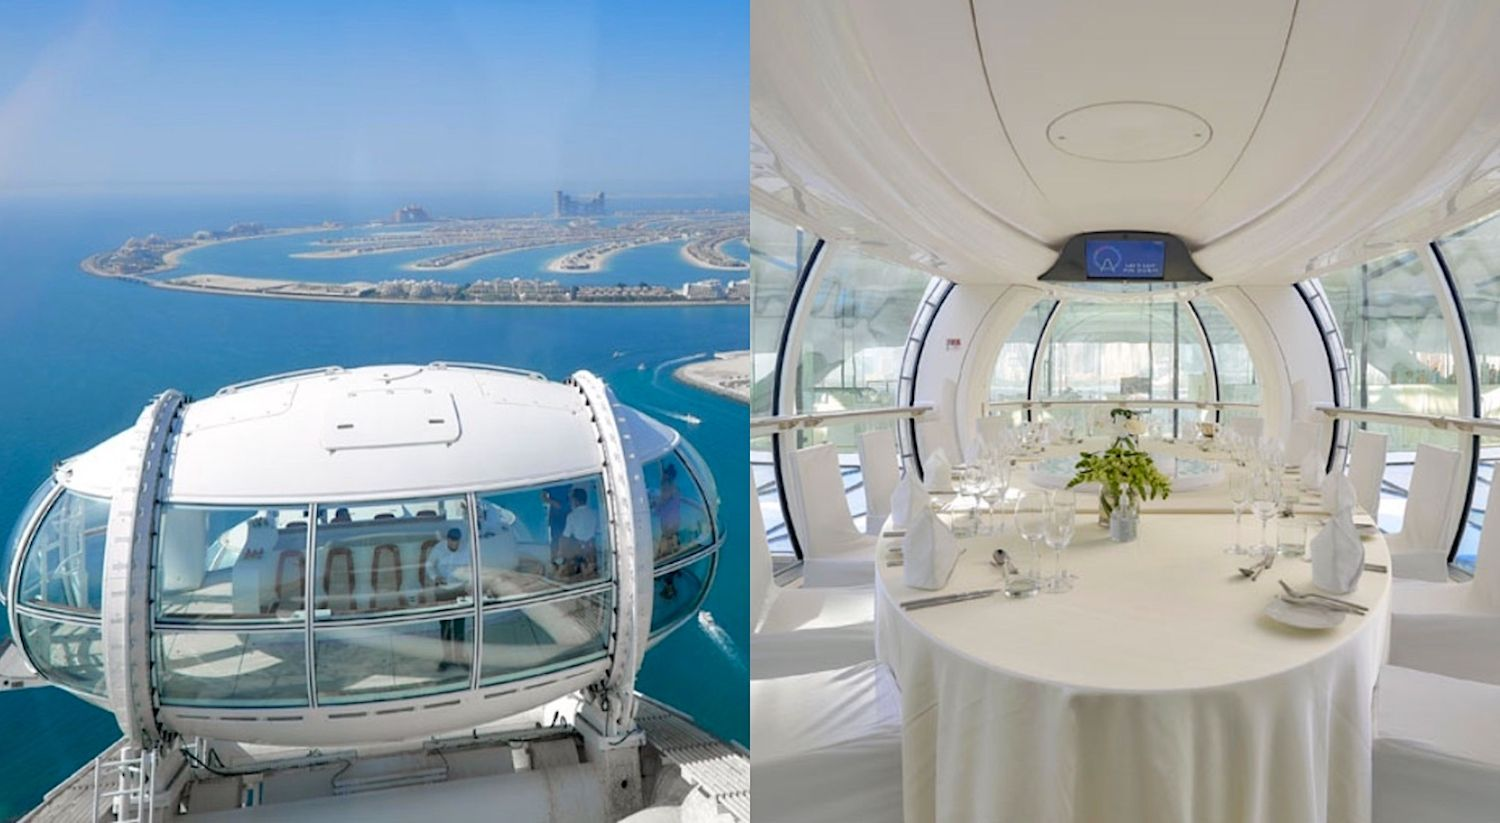 Interior of cabin of world's largest and tallest observation wheel in Dubai